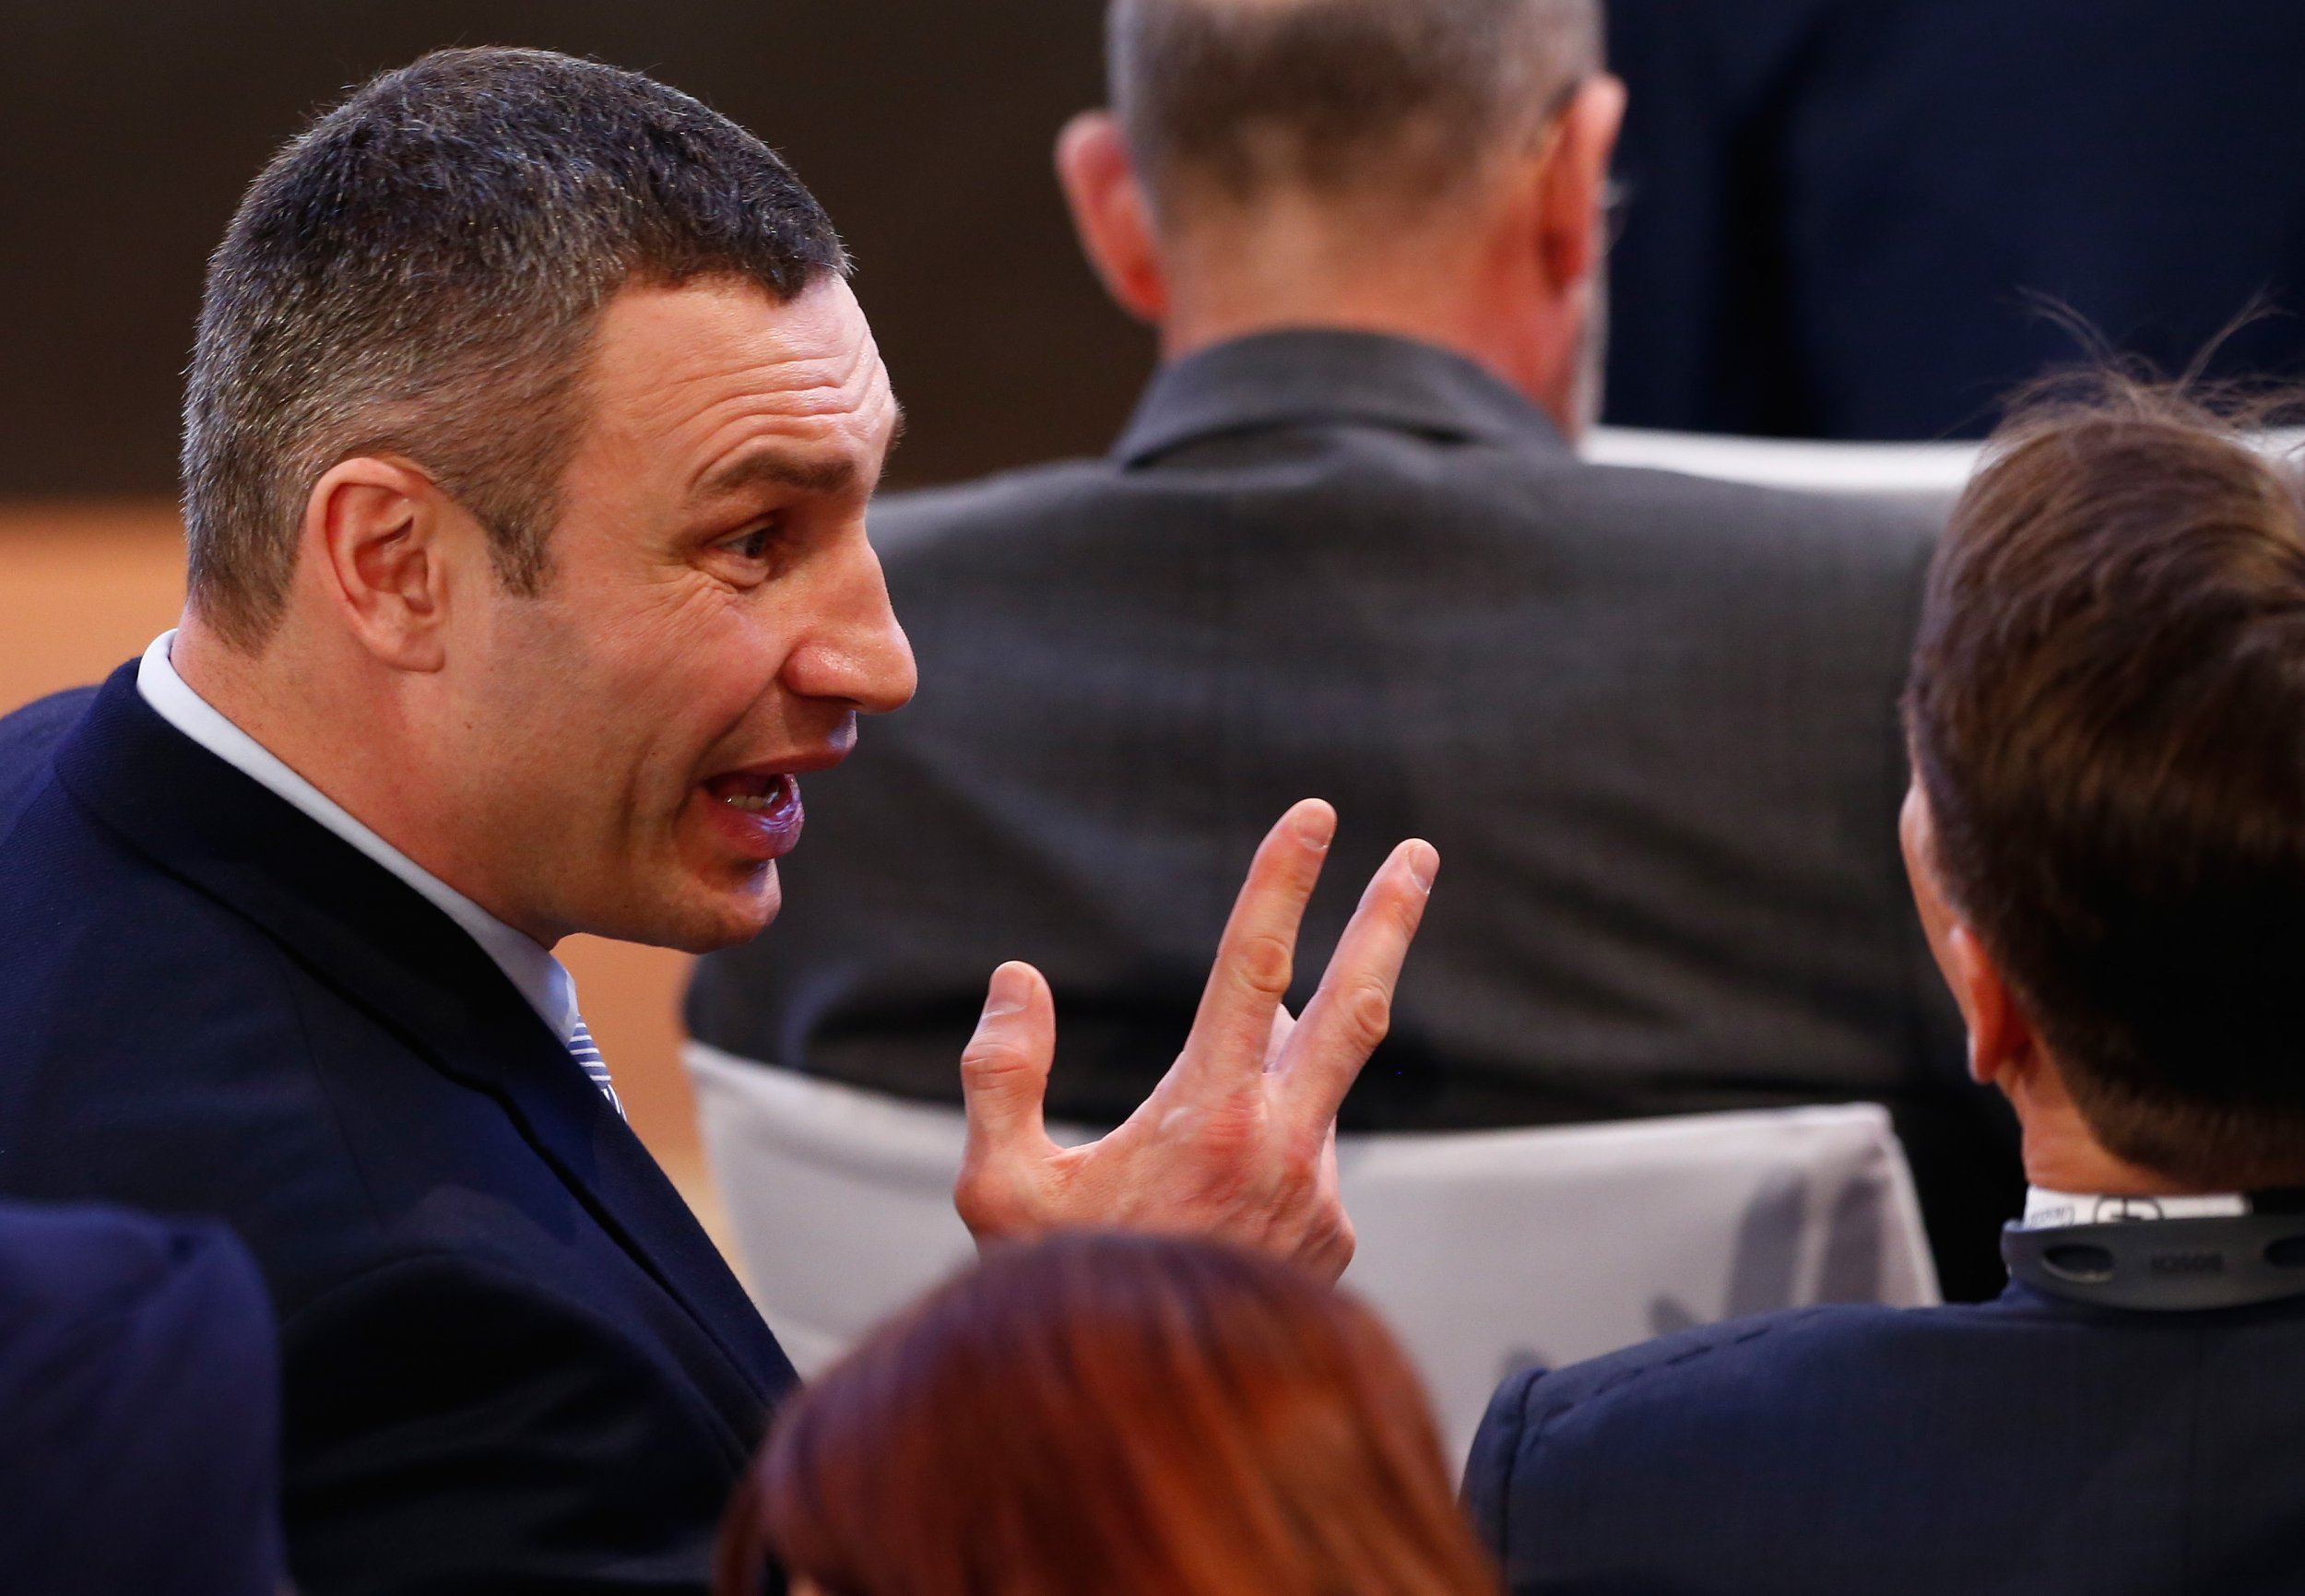 Kiev S Klitschko Opens Up About Trump S Support At Fights